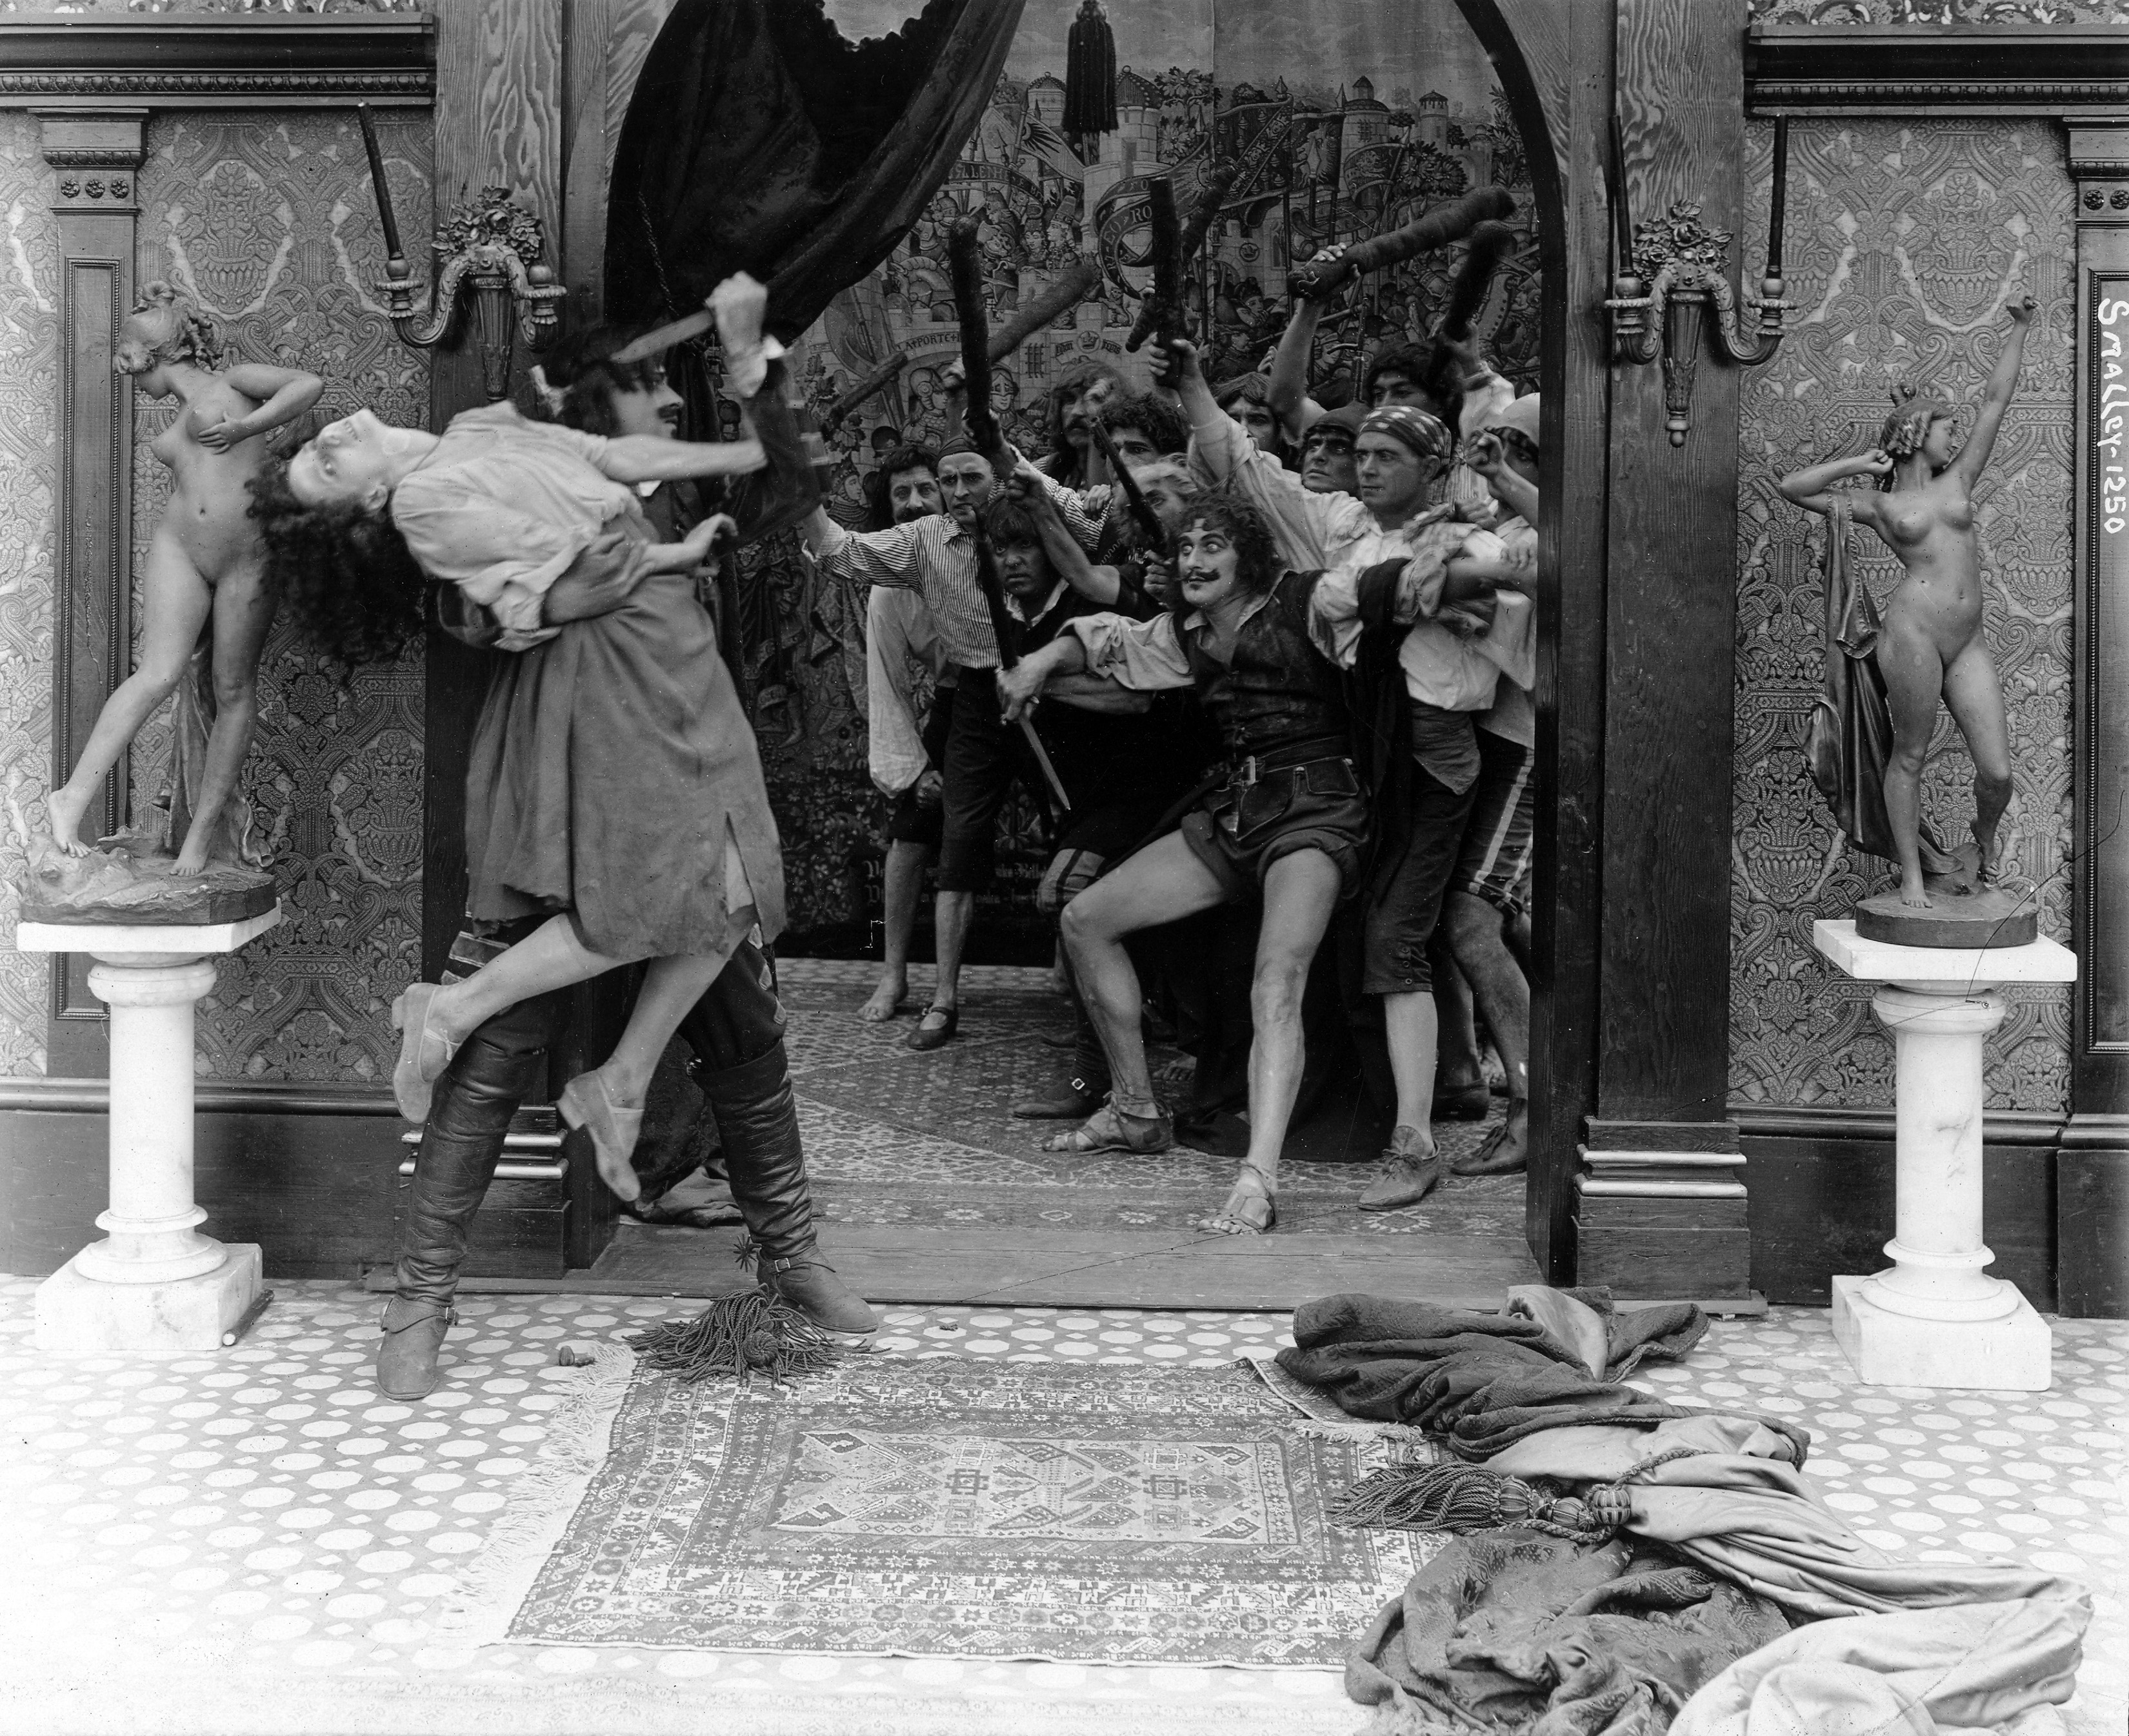 From 1916's  'The Dumb Girl of Portico' directed by Lois Weber.